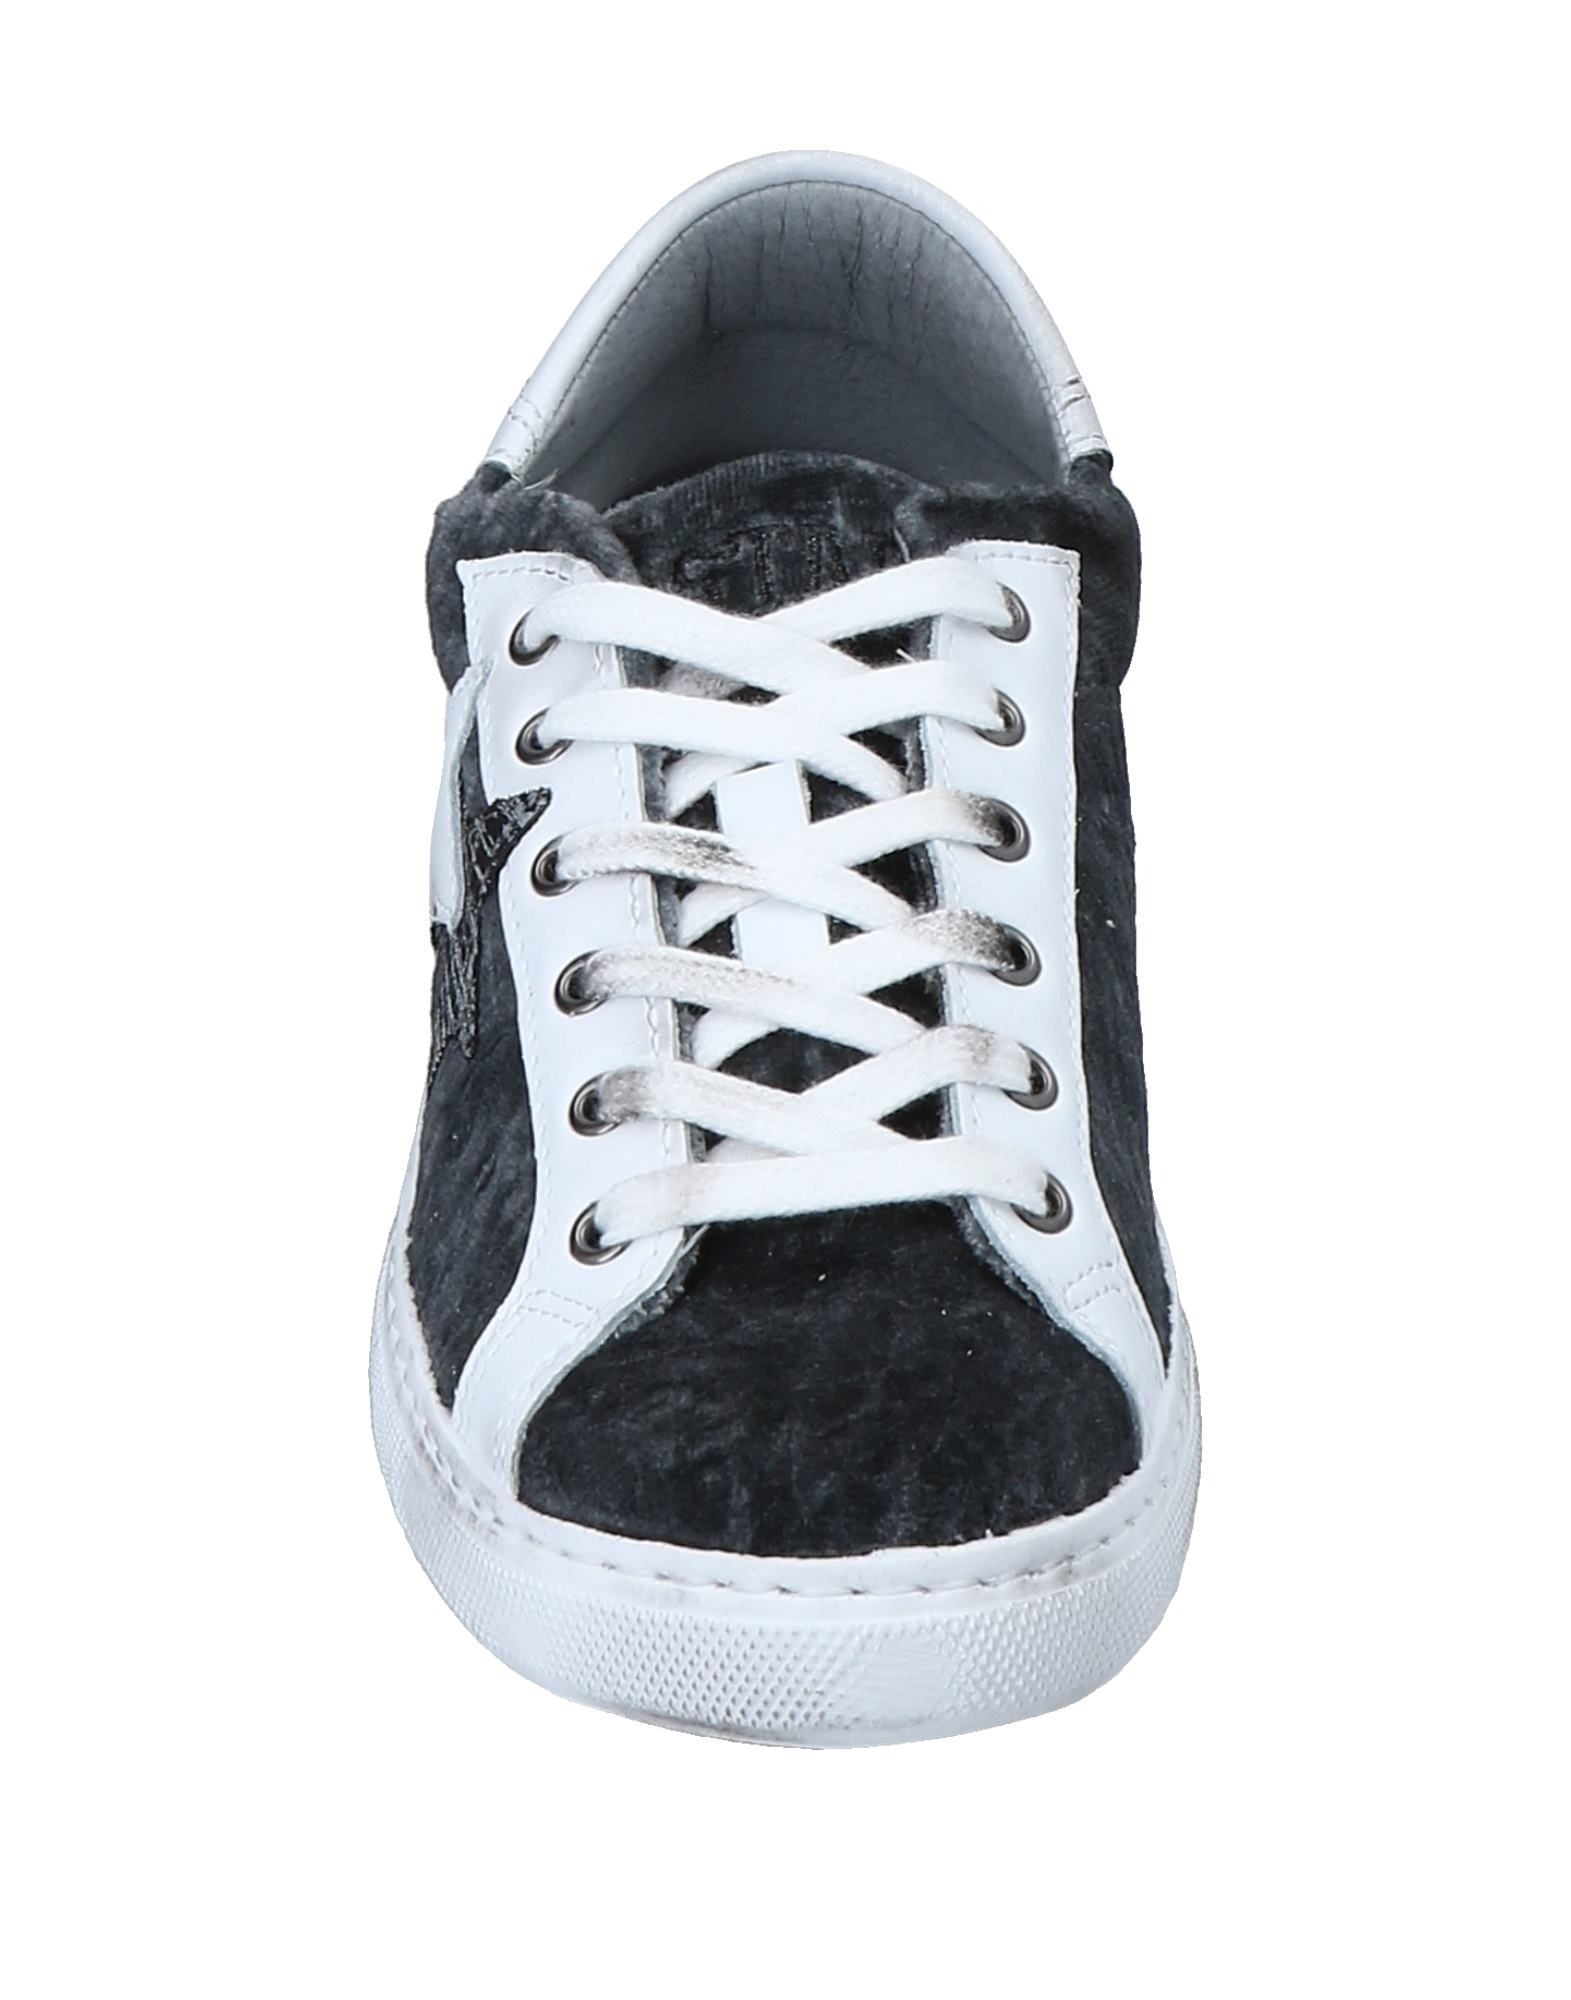 2Star Sneakers Damen   Damen 11551690IS  81a875